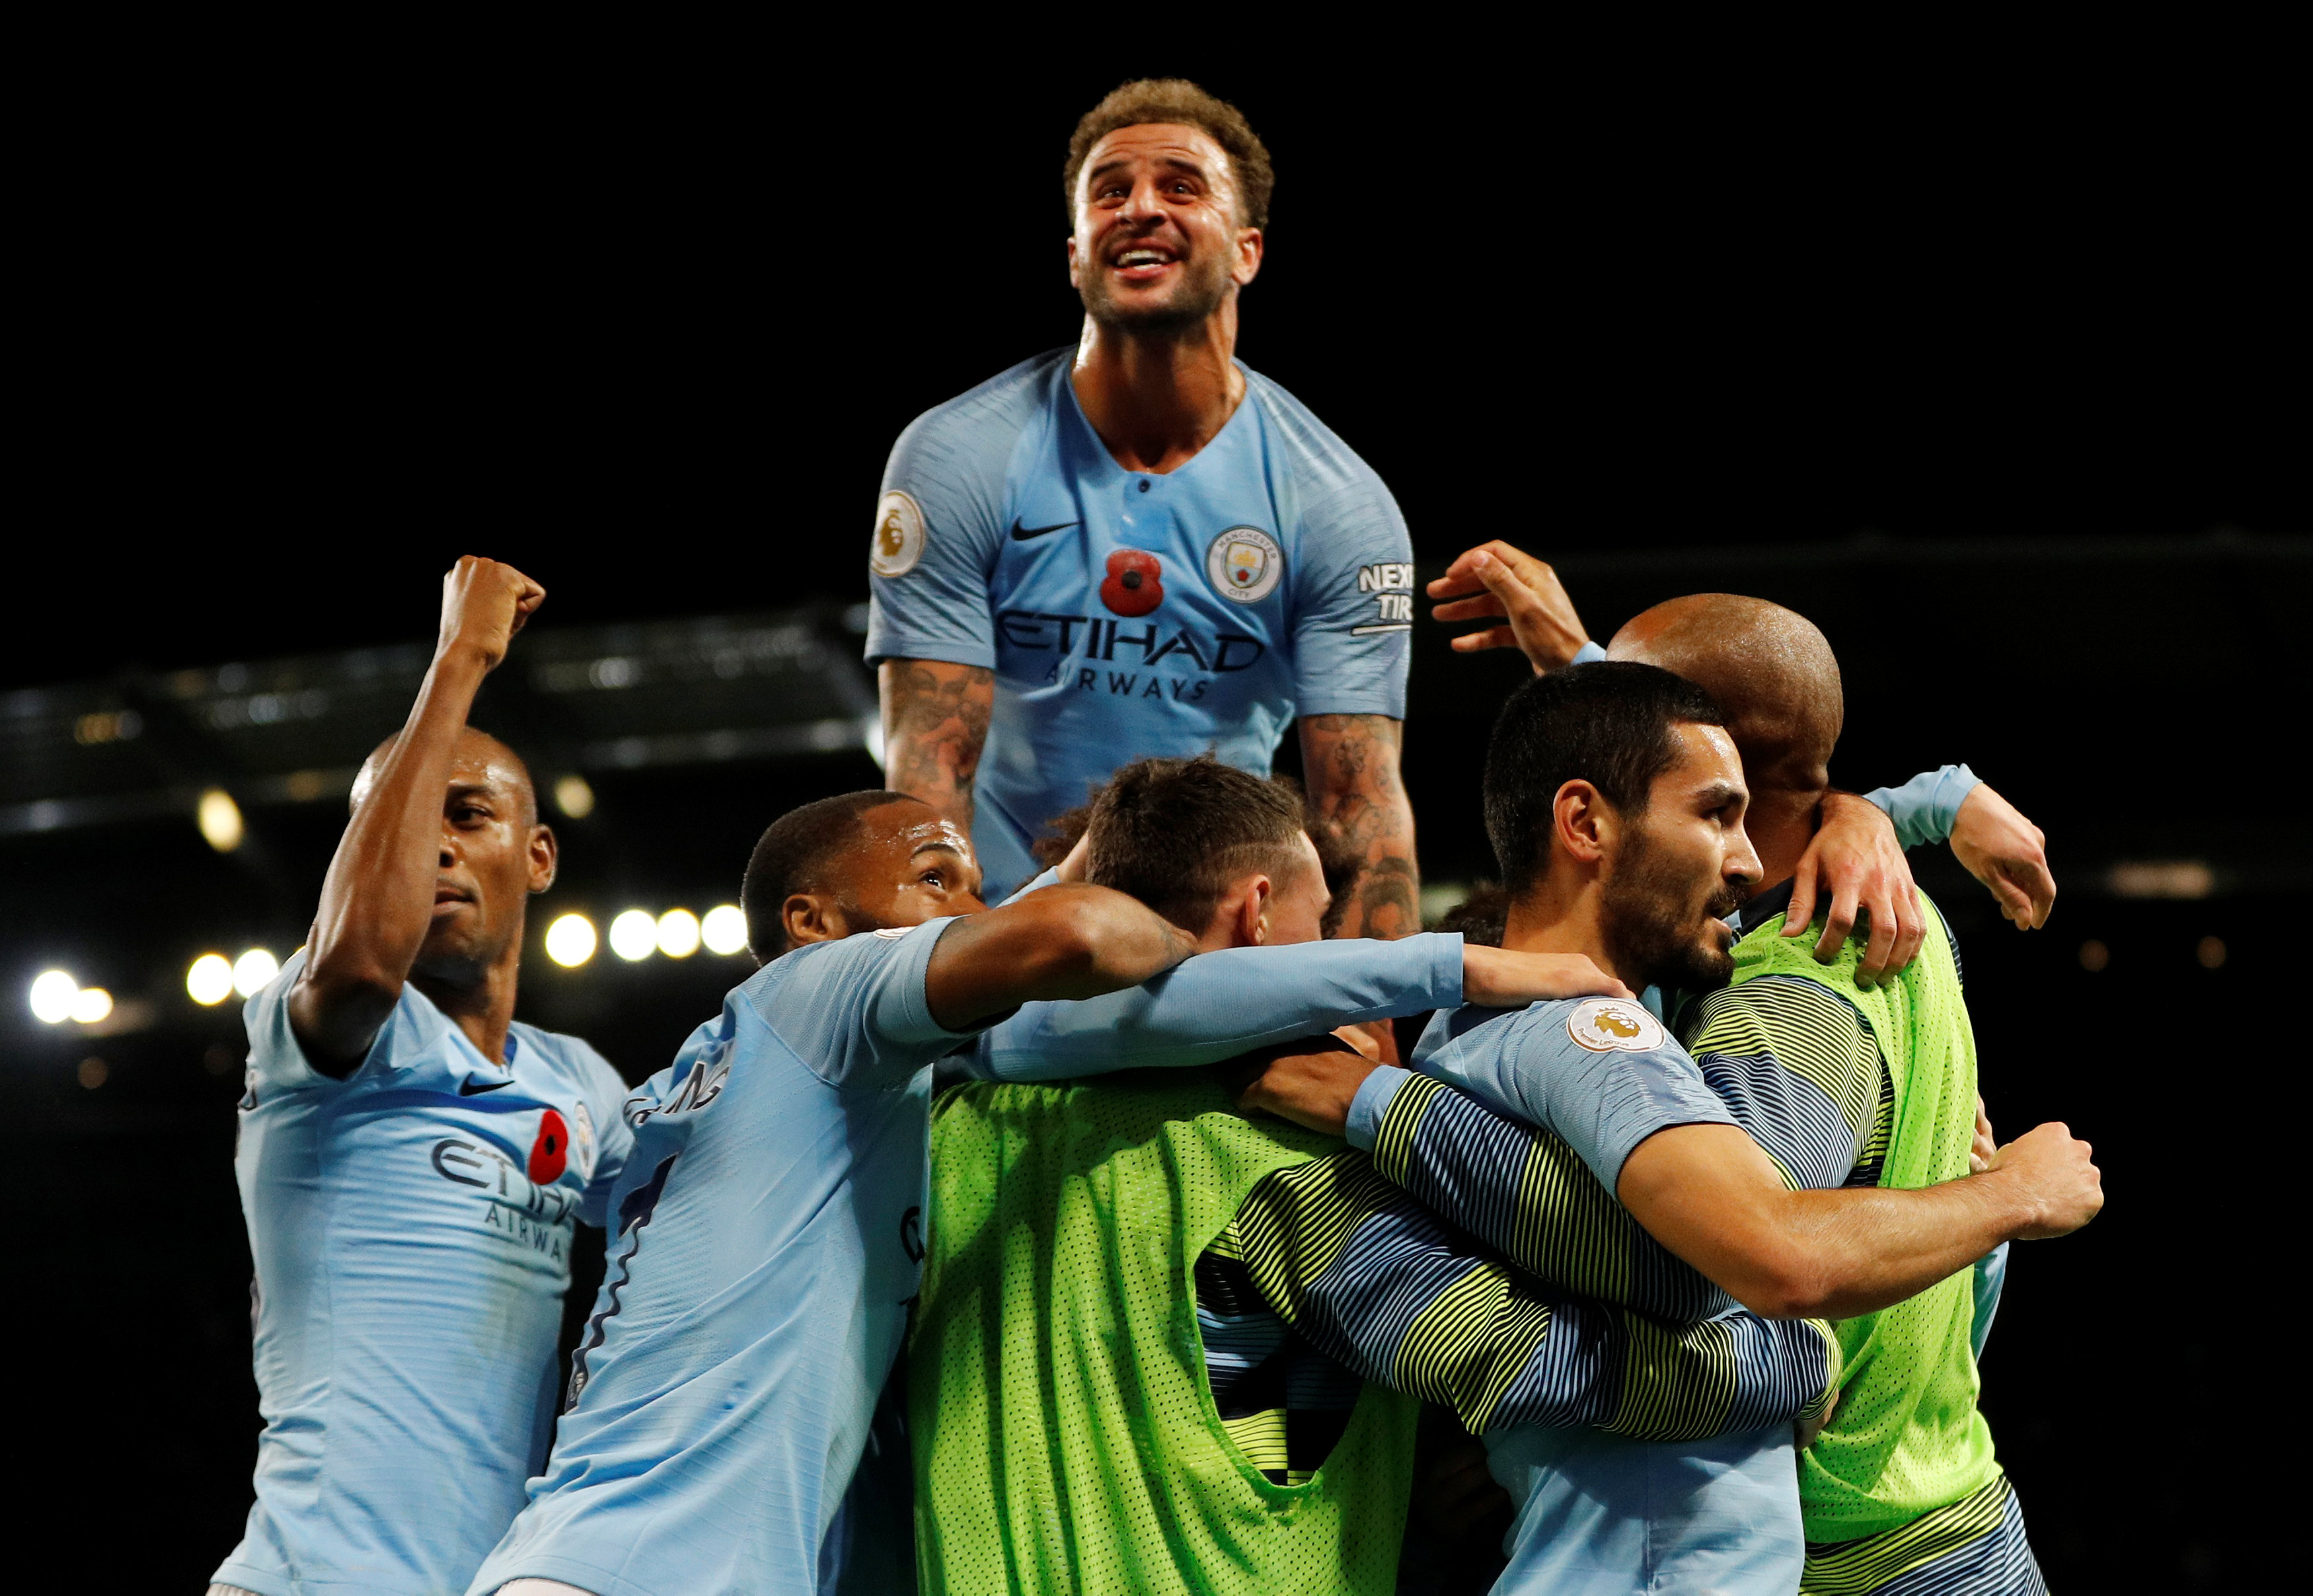 Man City: Man City Stay Top Thanks To Derby Victory